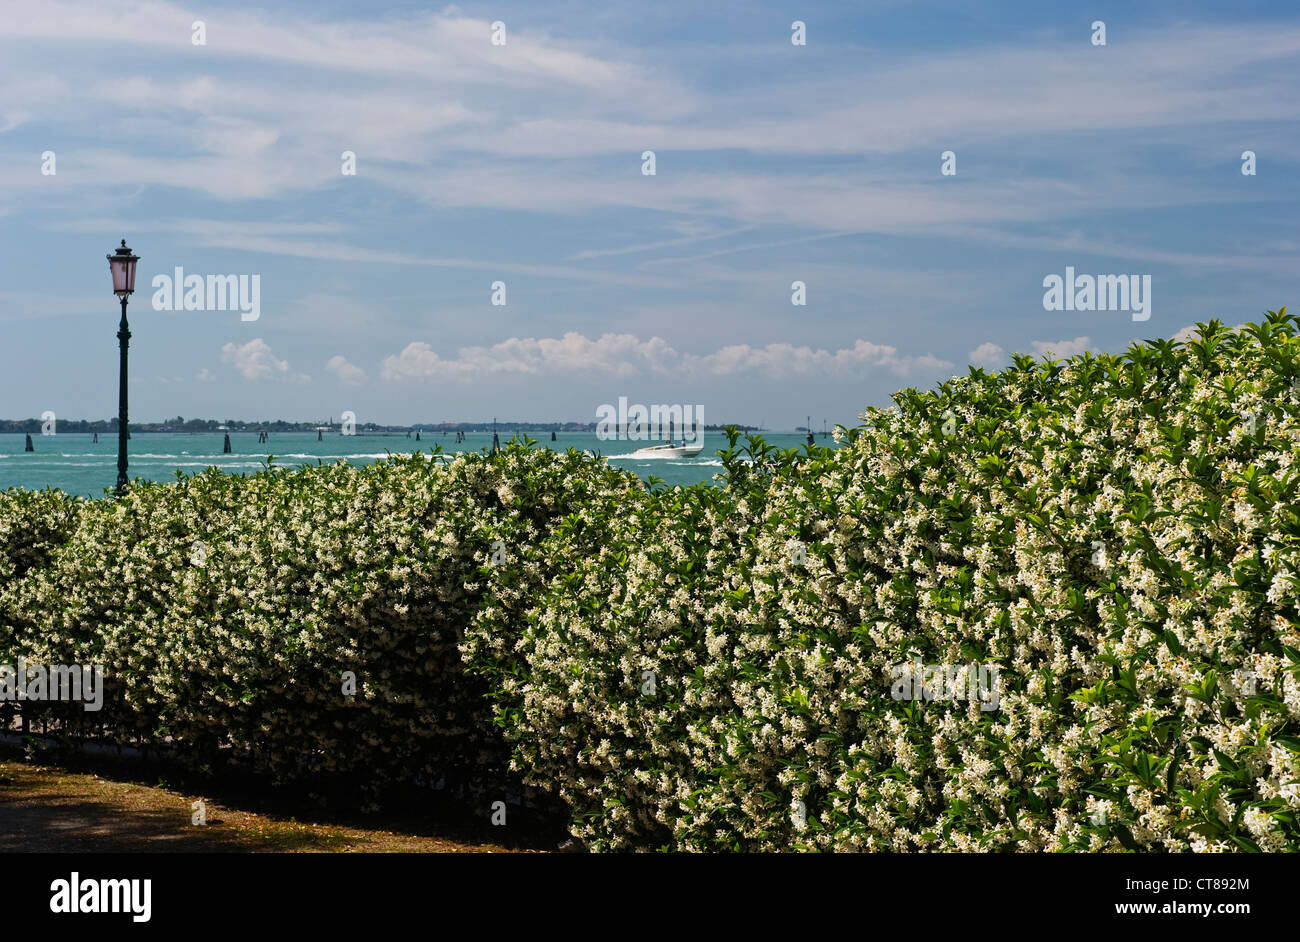 Venice, Italy. A flowering hedge of the scented trachelospermum jasminoides (Star Jasmine) in front of the Biennale - Stock Image